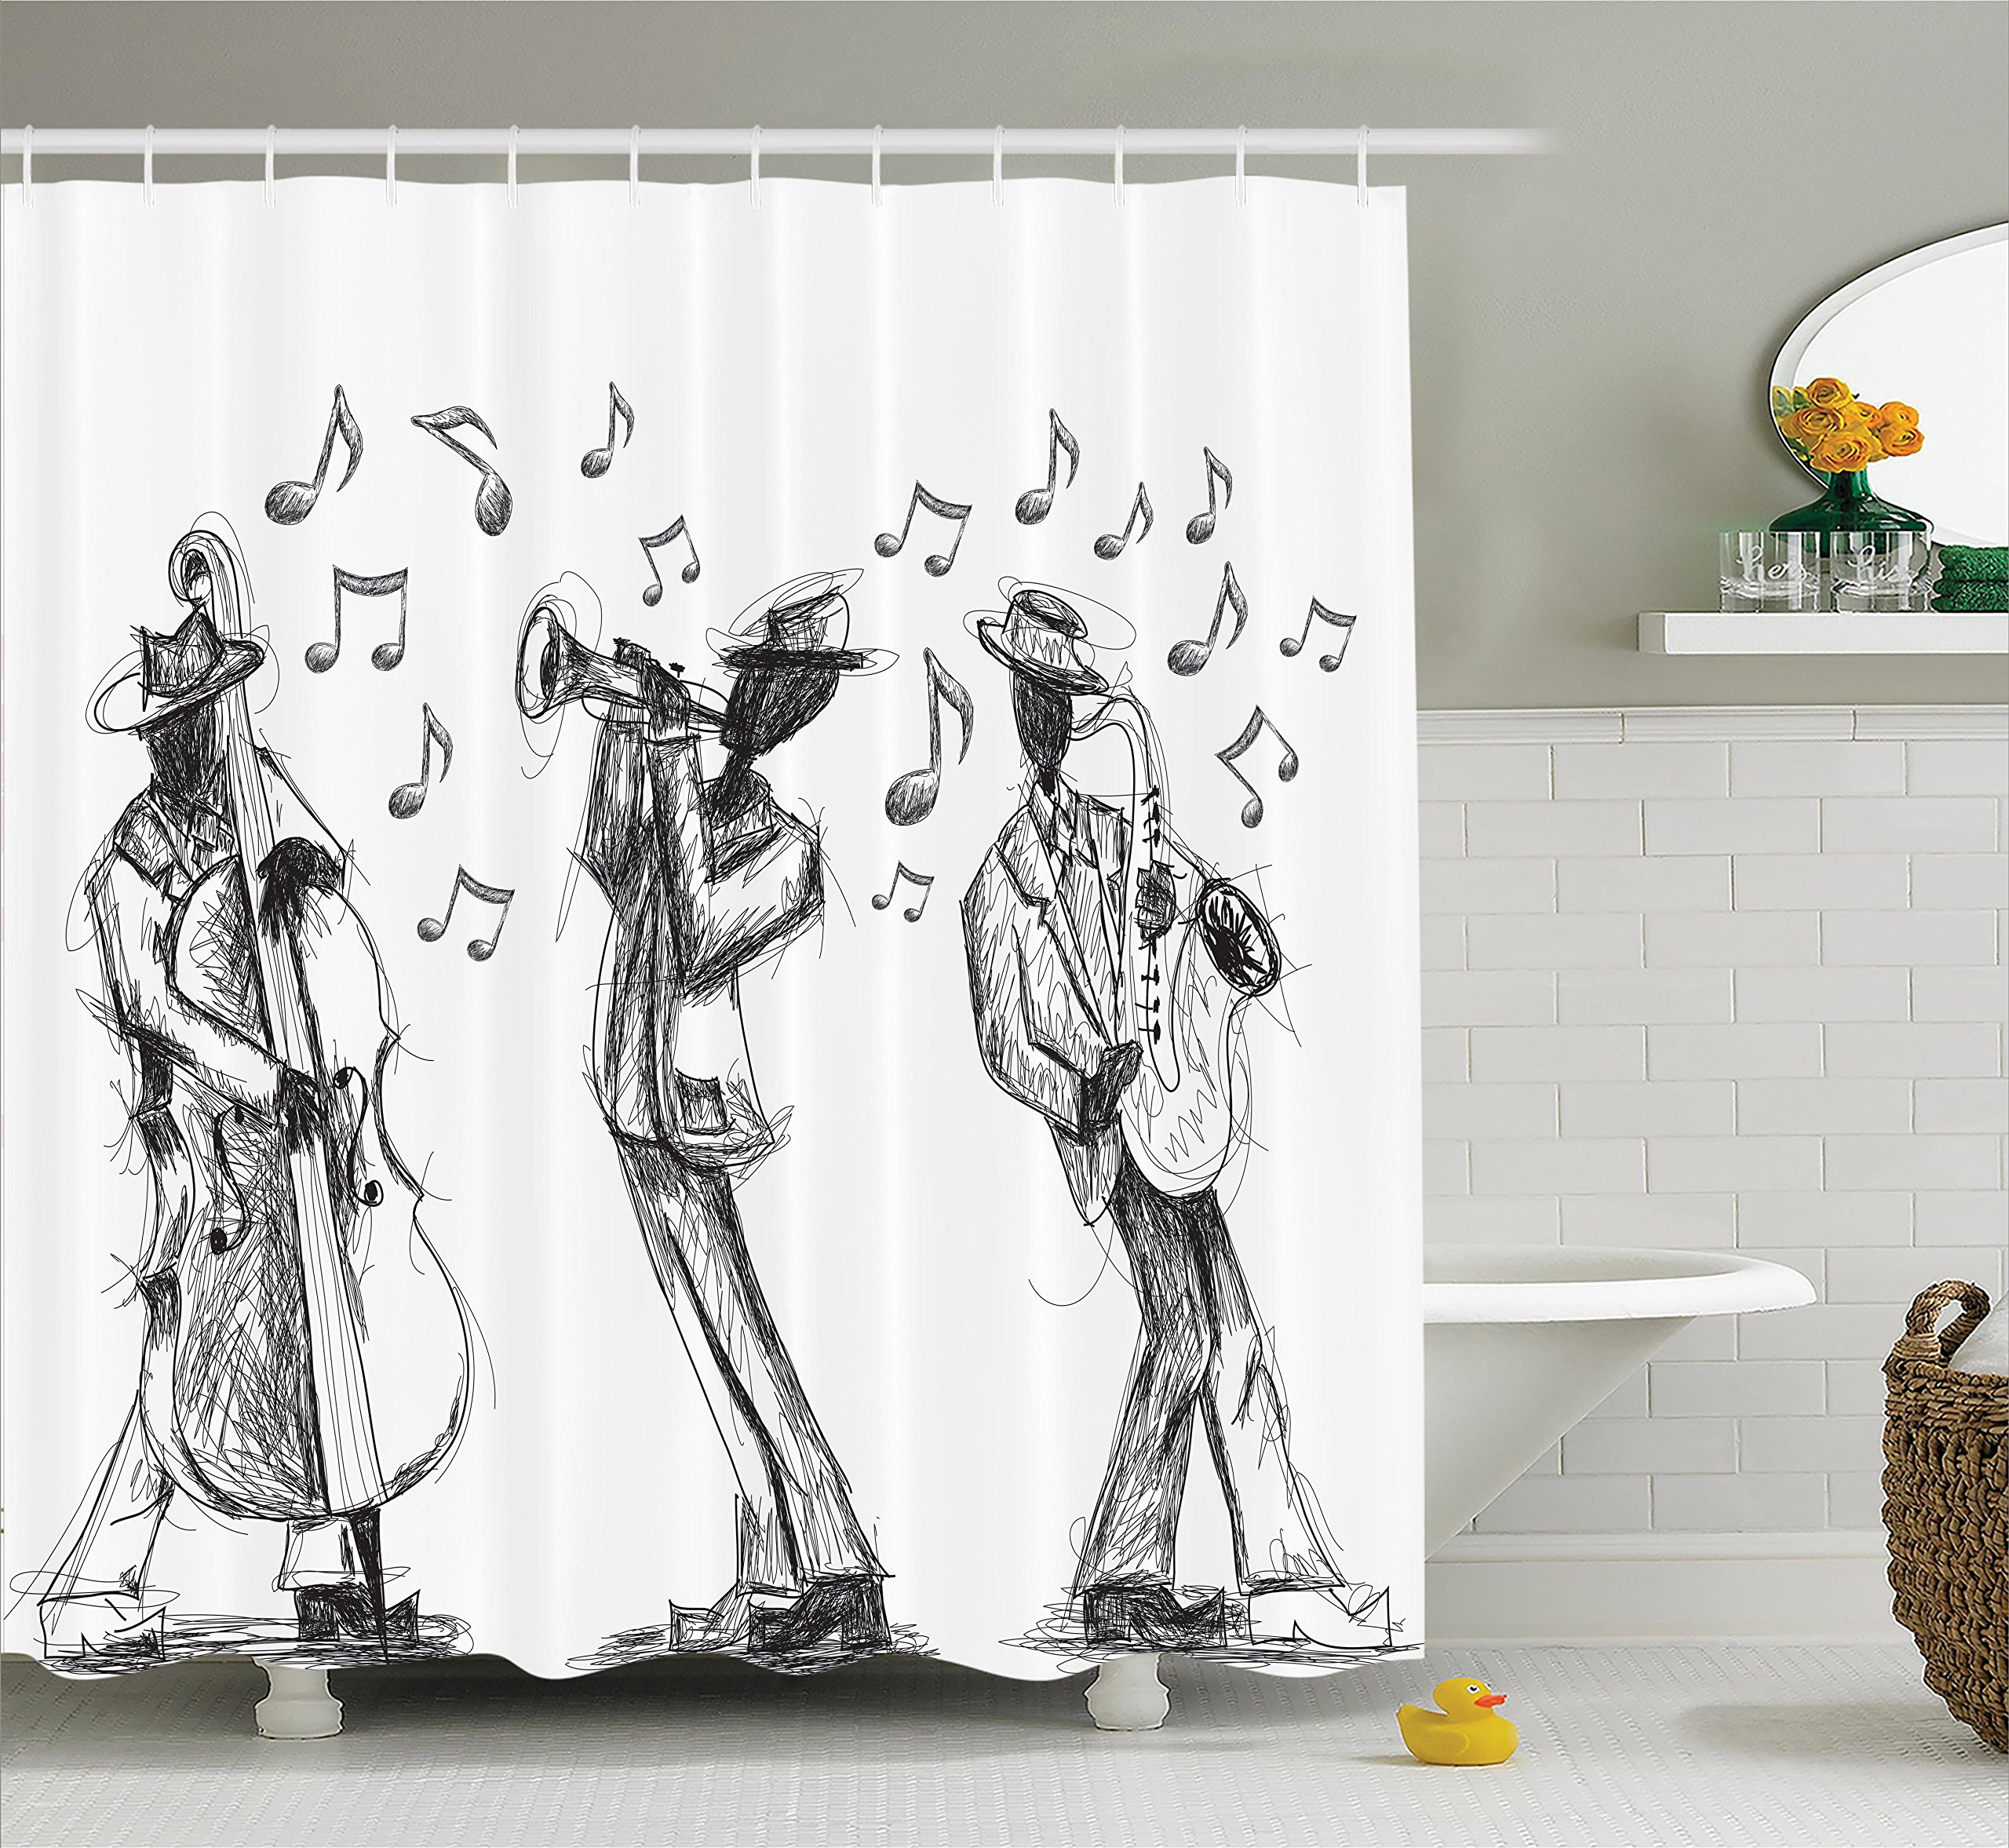 ambesonne jazz music decor collection sketch style of a jazz band playing music with instruments - Musical Shower Curtains